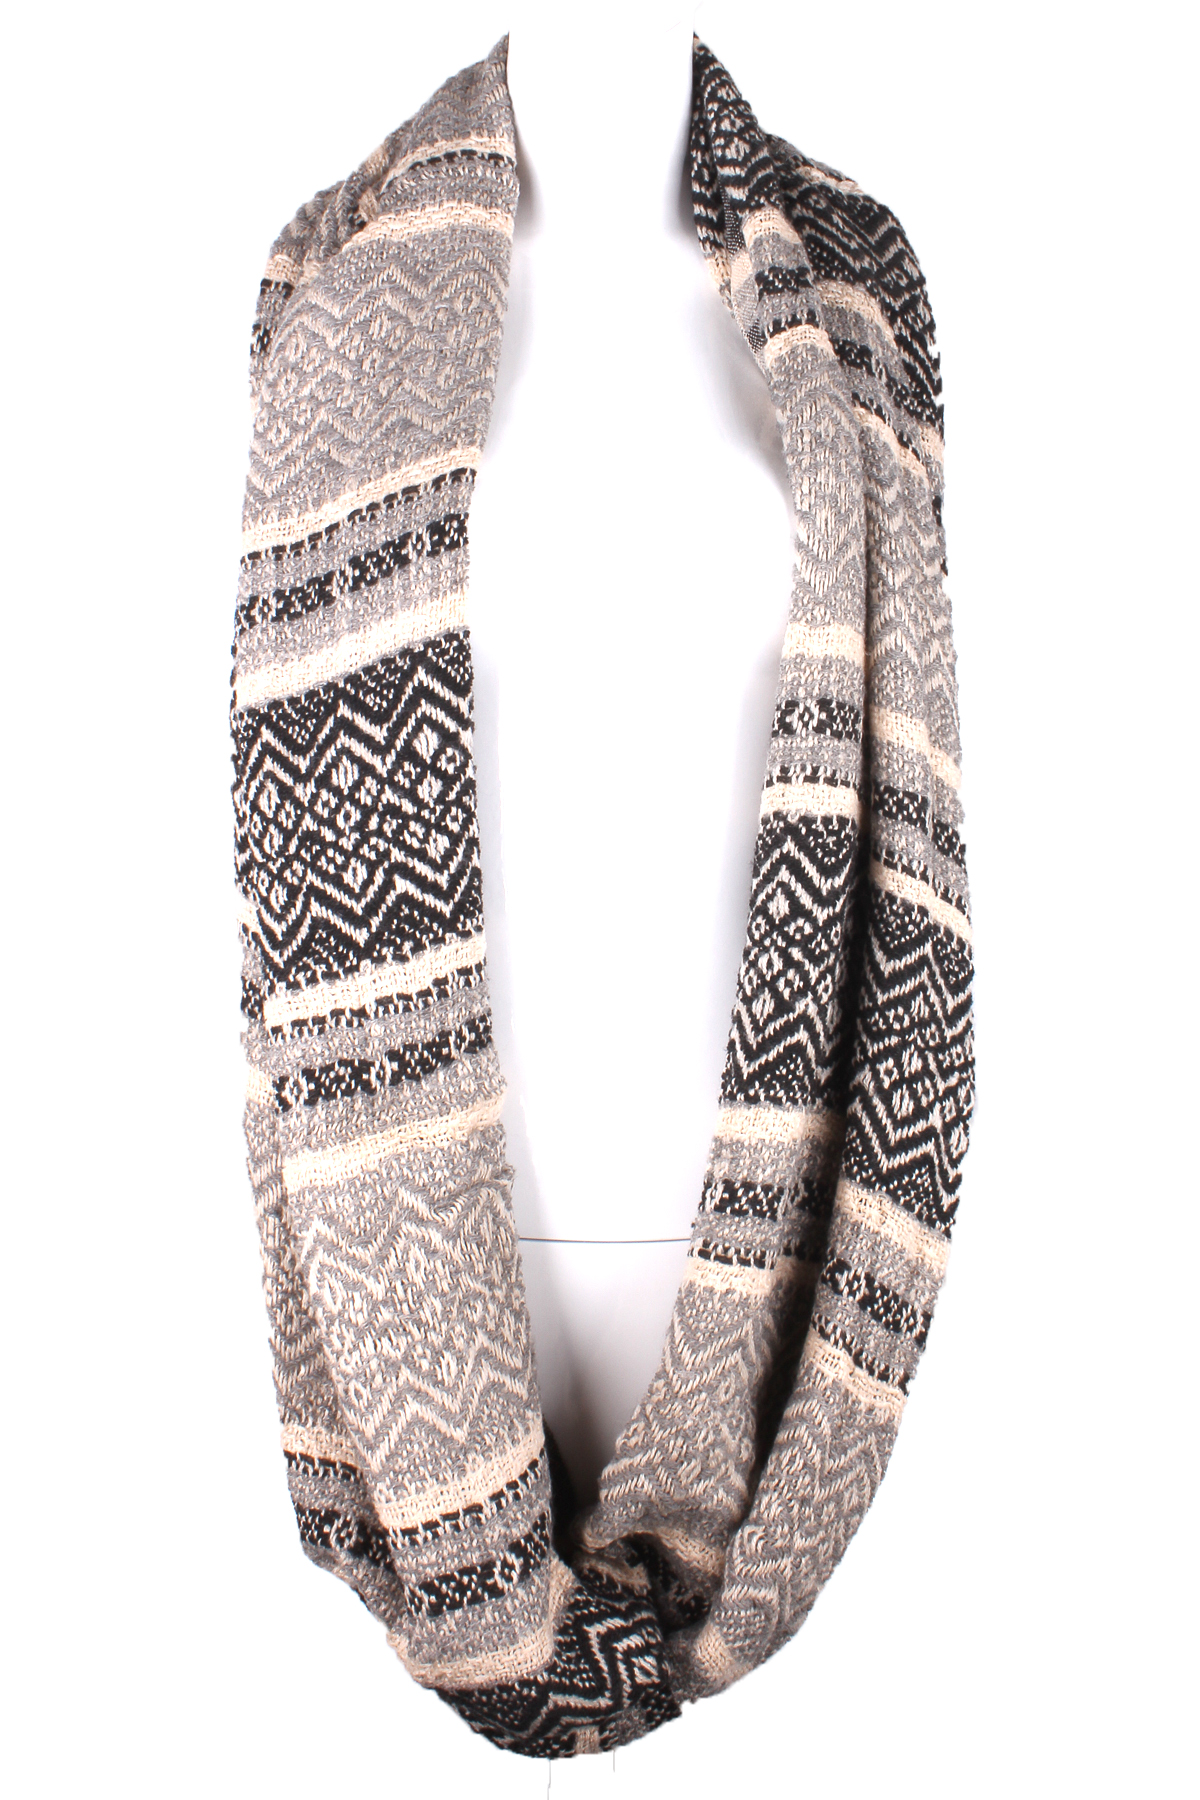 Knitted Fairosle Pattern Infinity Scarf - Scarves